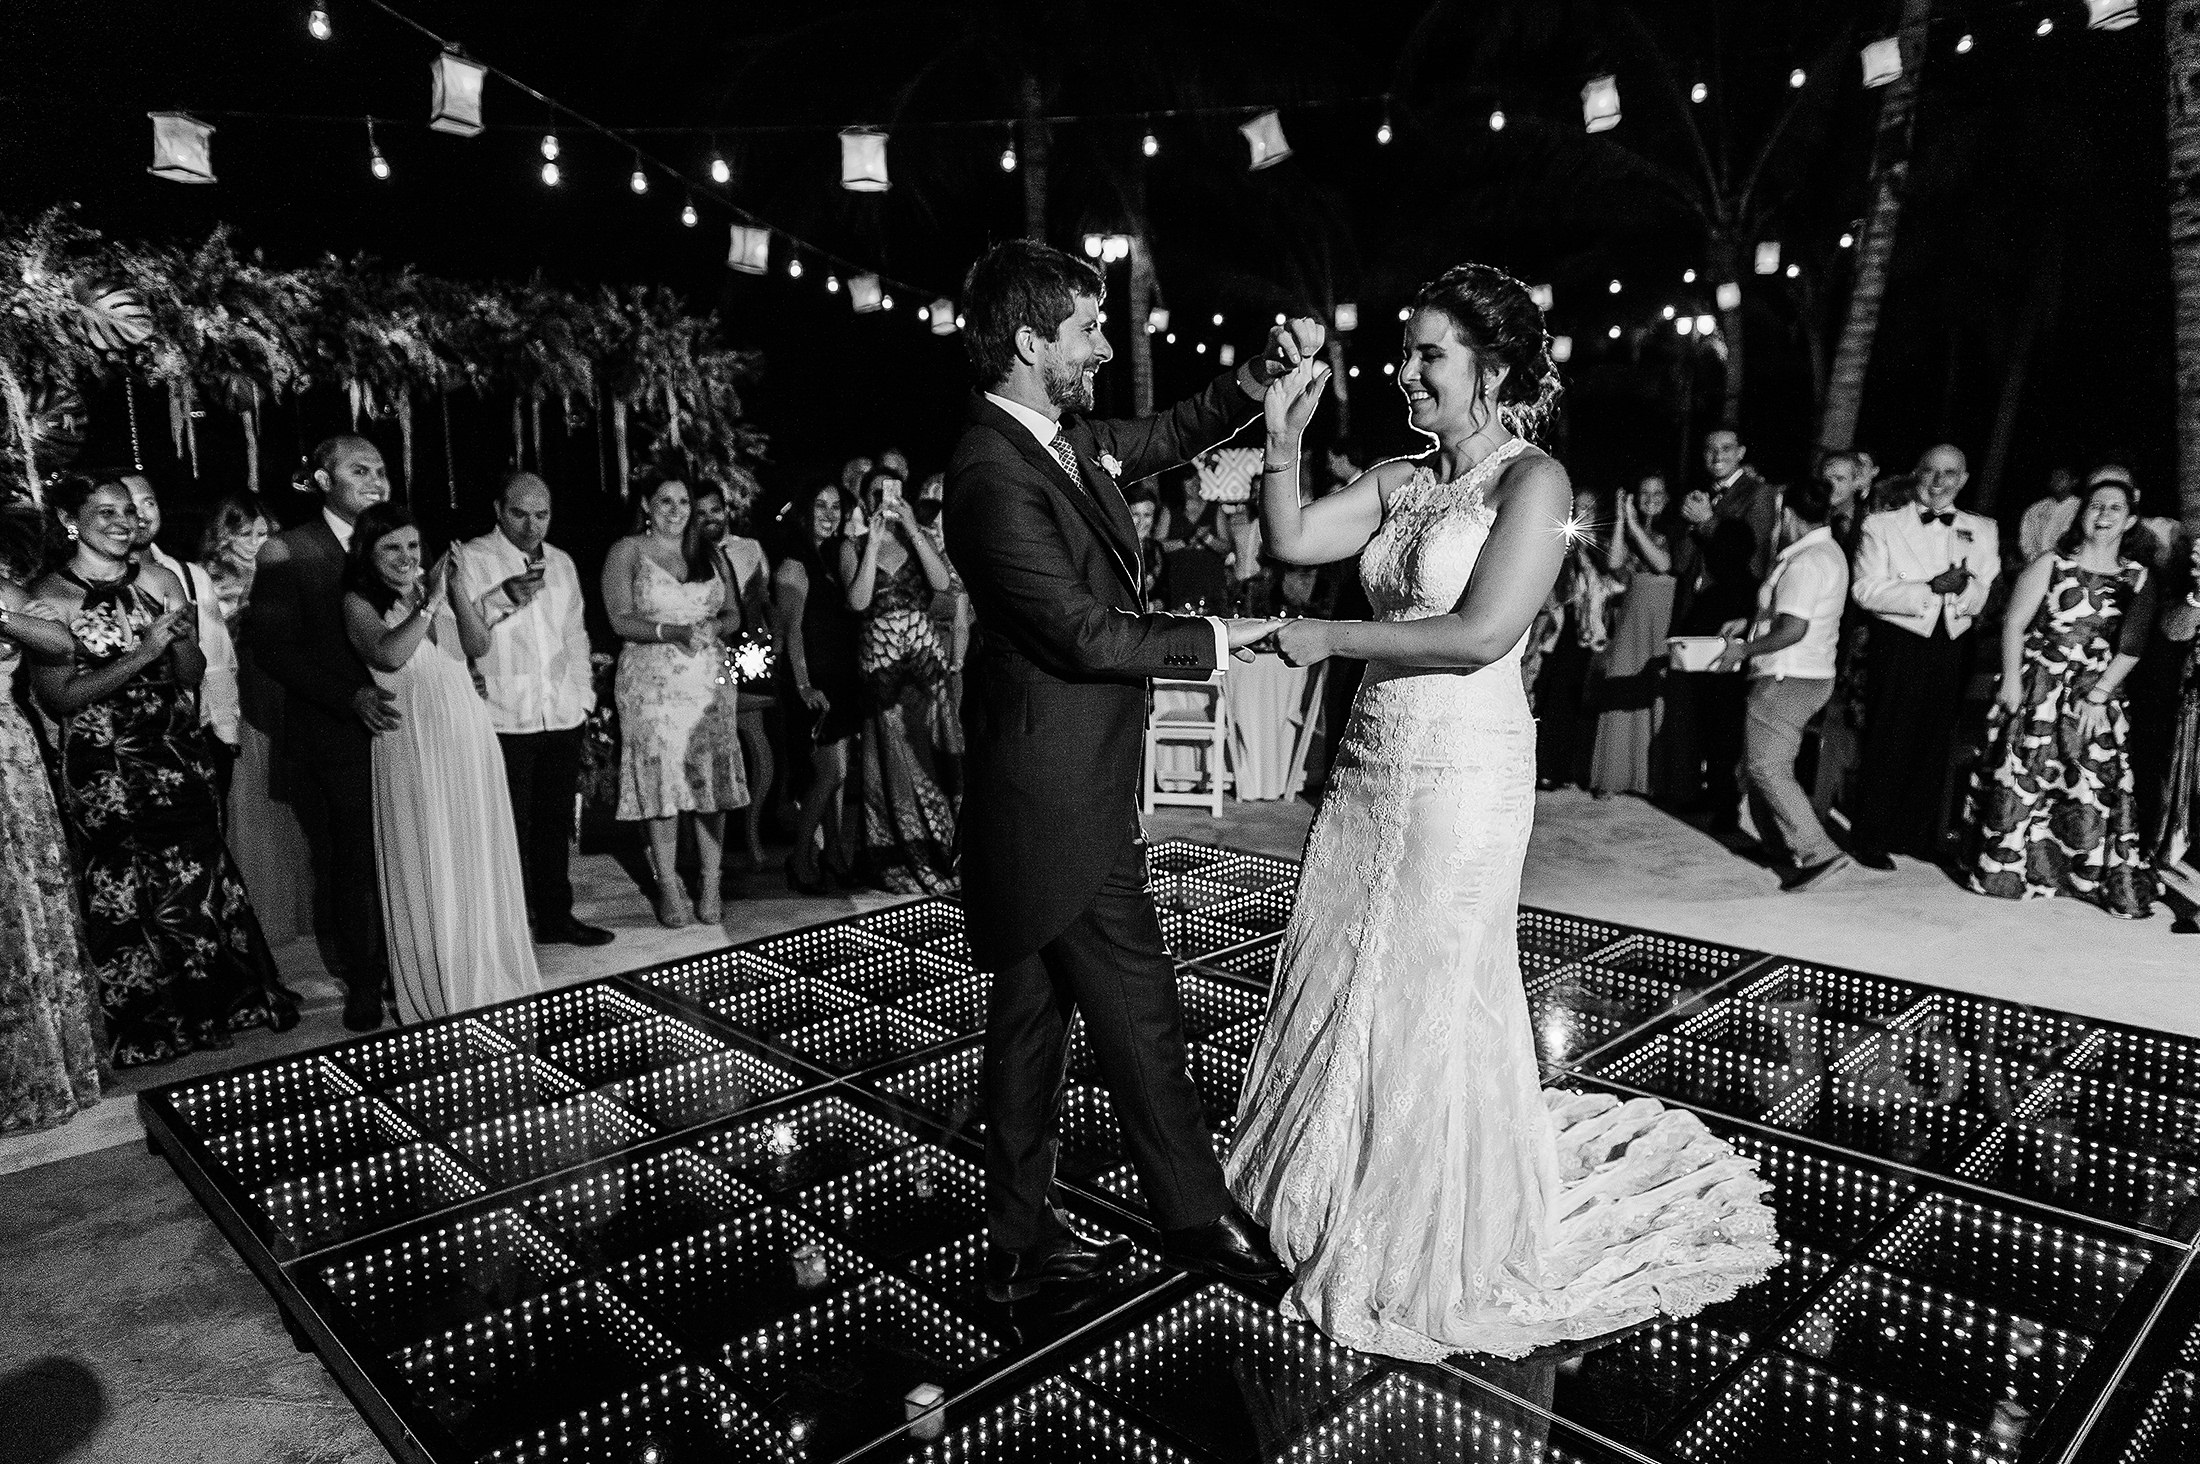 First dance in black and white bride and groom having fun